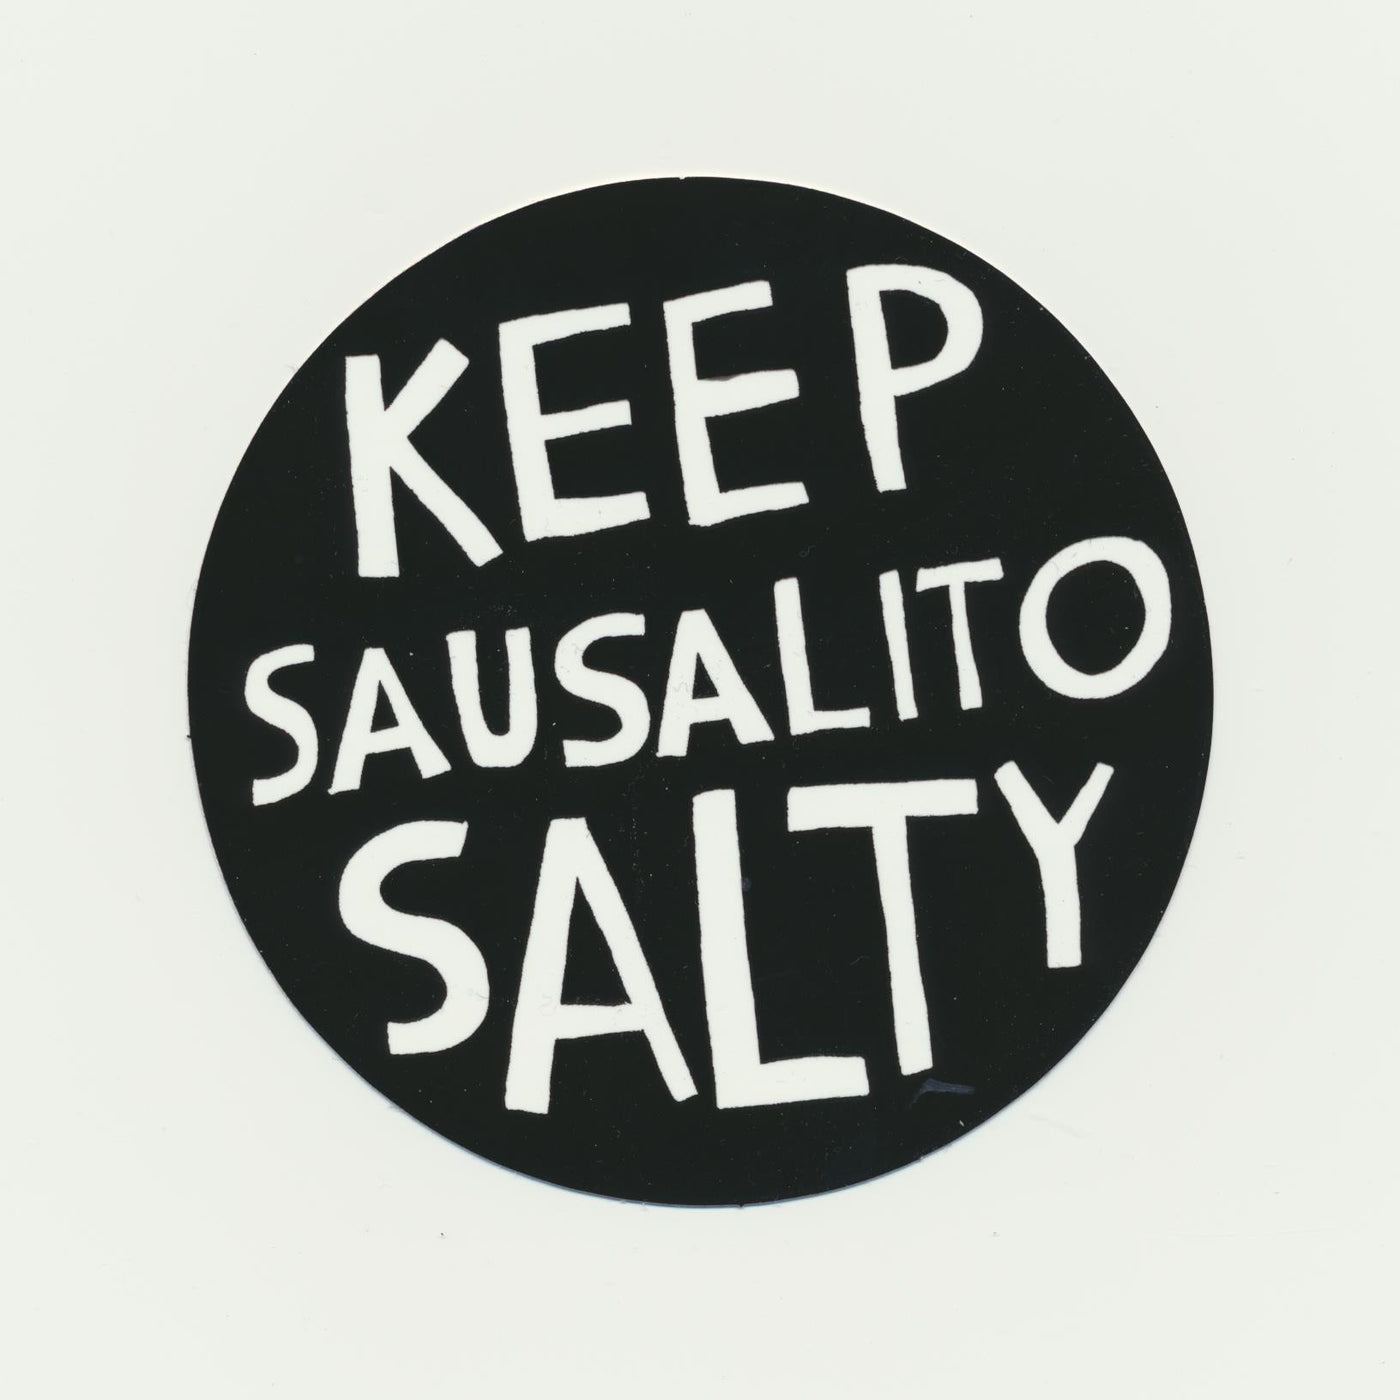 Keep Sausalito Salty Typescript Sticker 4""